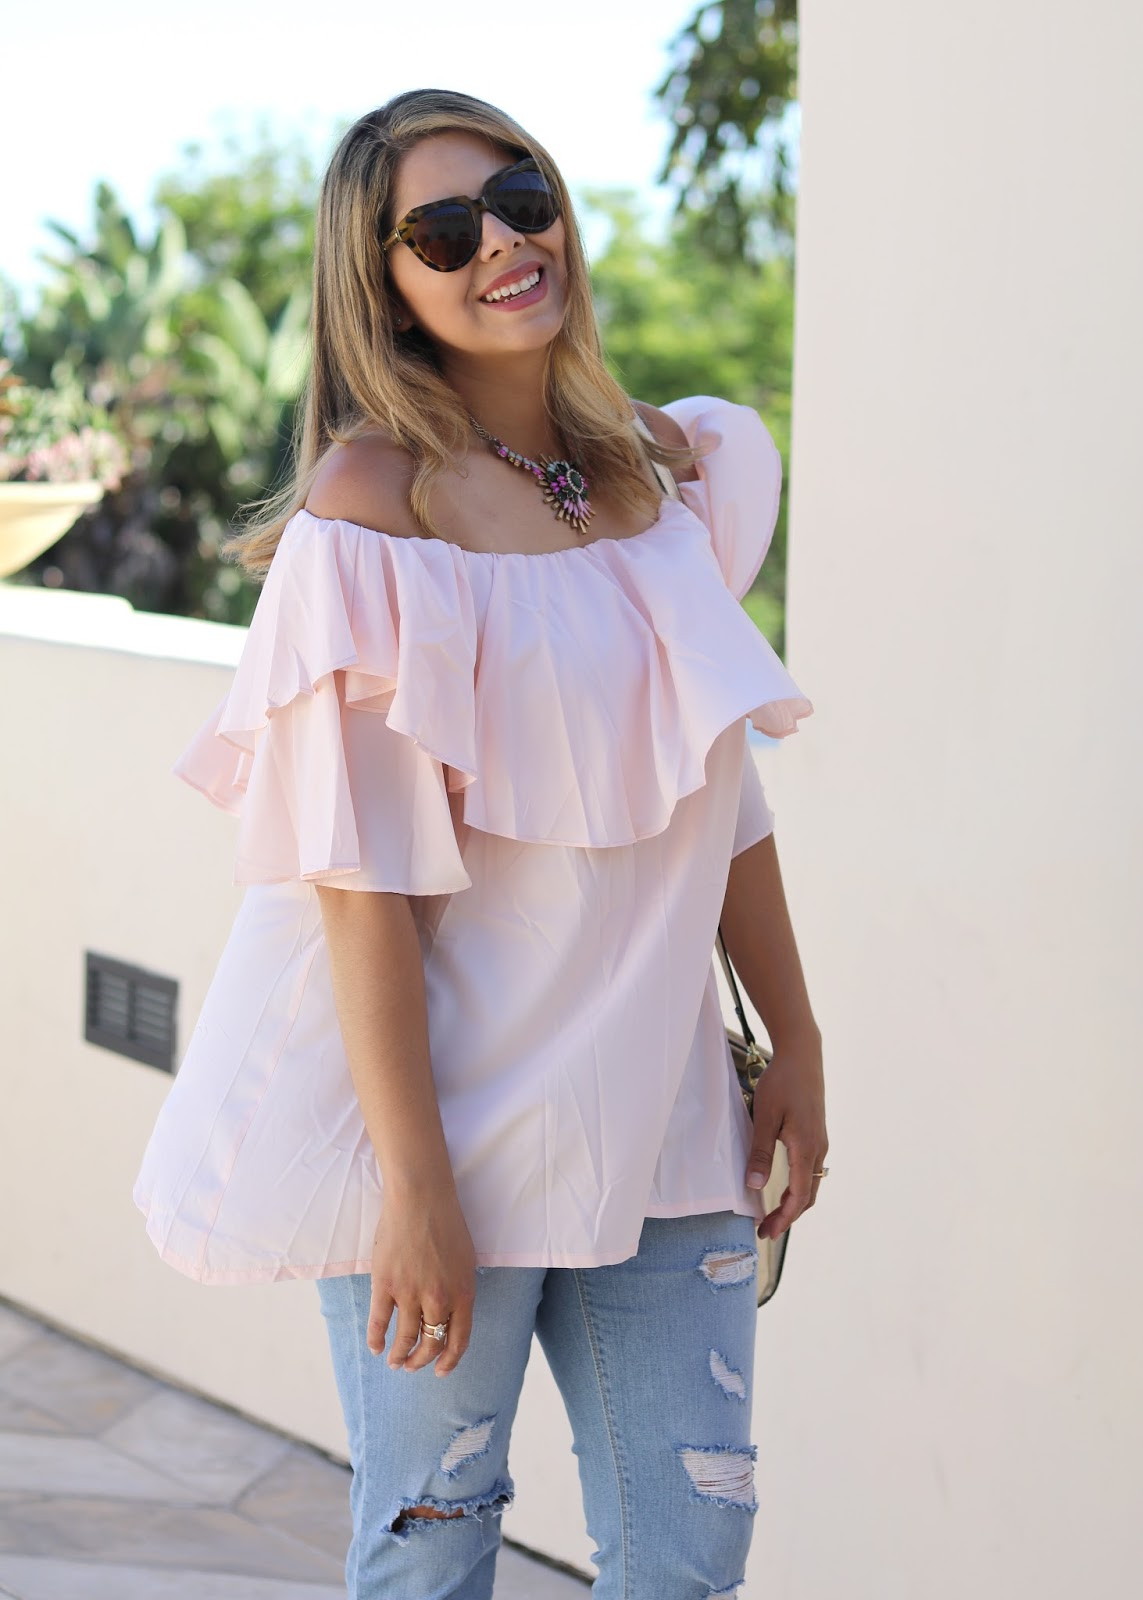 Chicwish pink top, chicwish blogger, karen walker sunglasses, latina fashion blogger, pink statement necklace